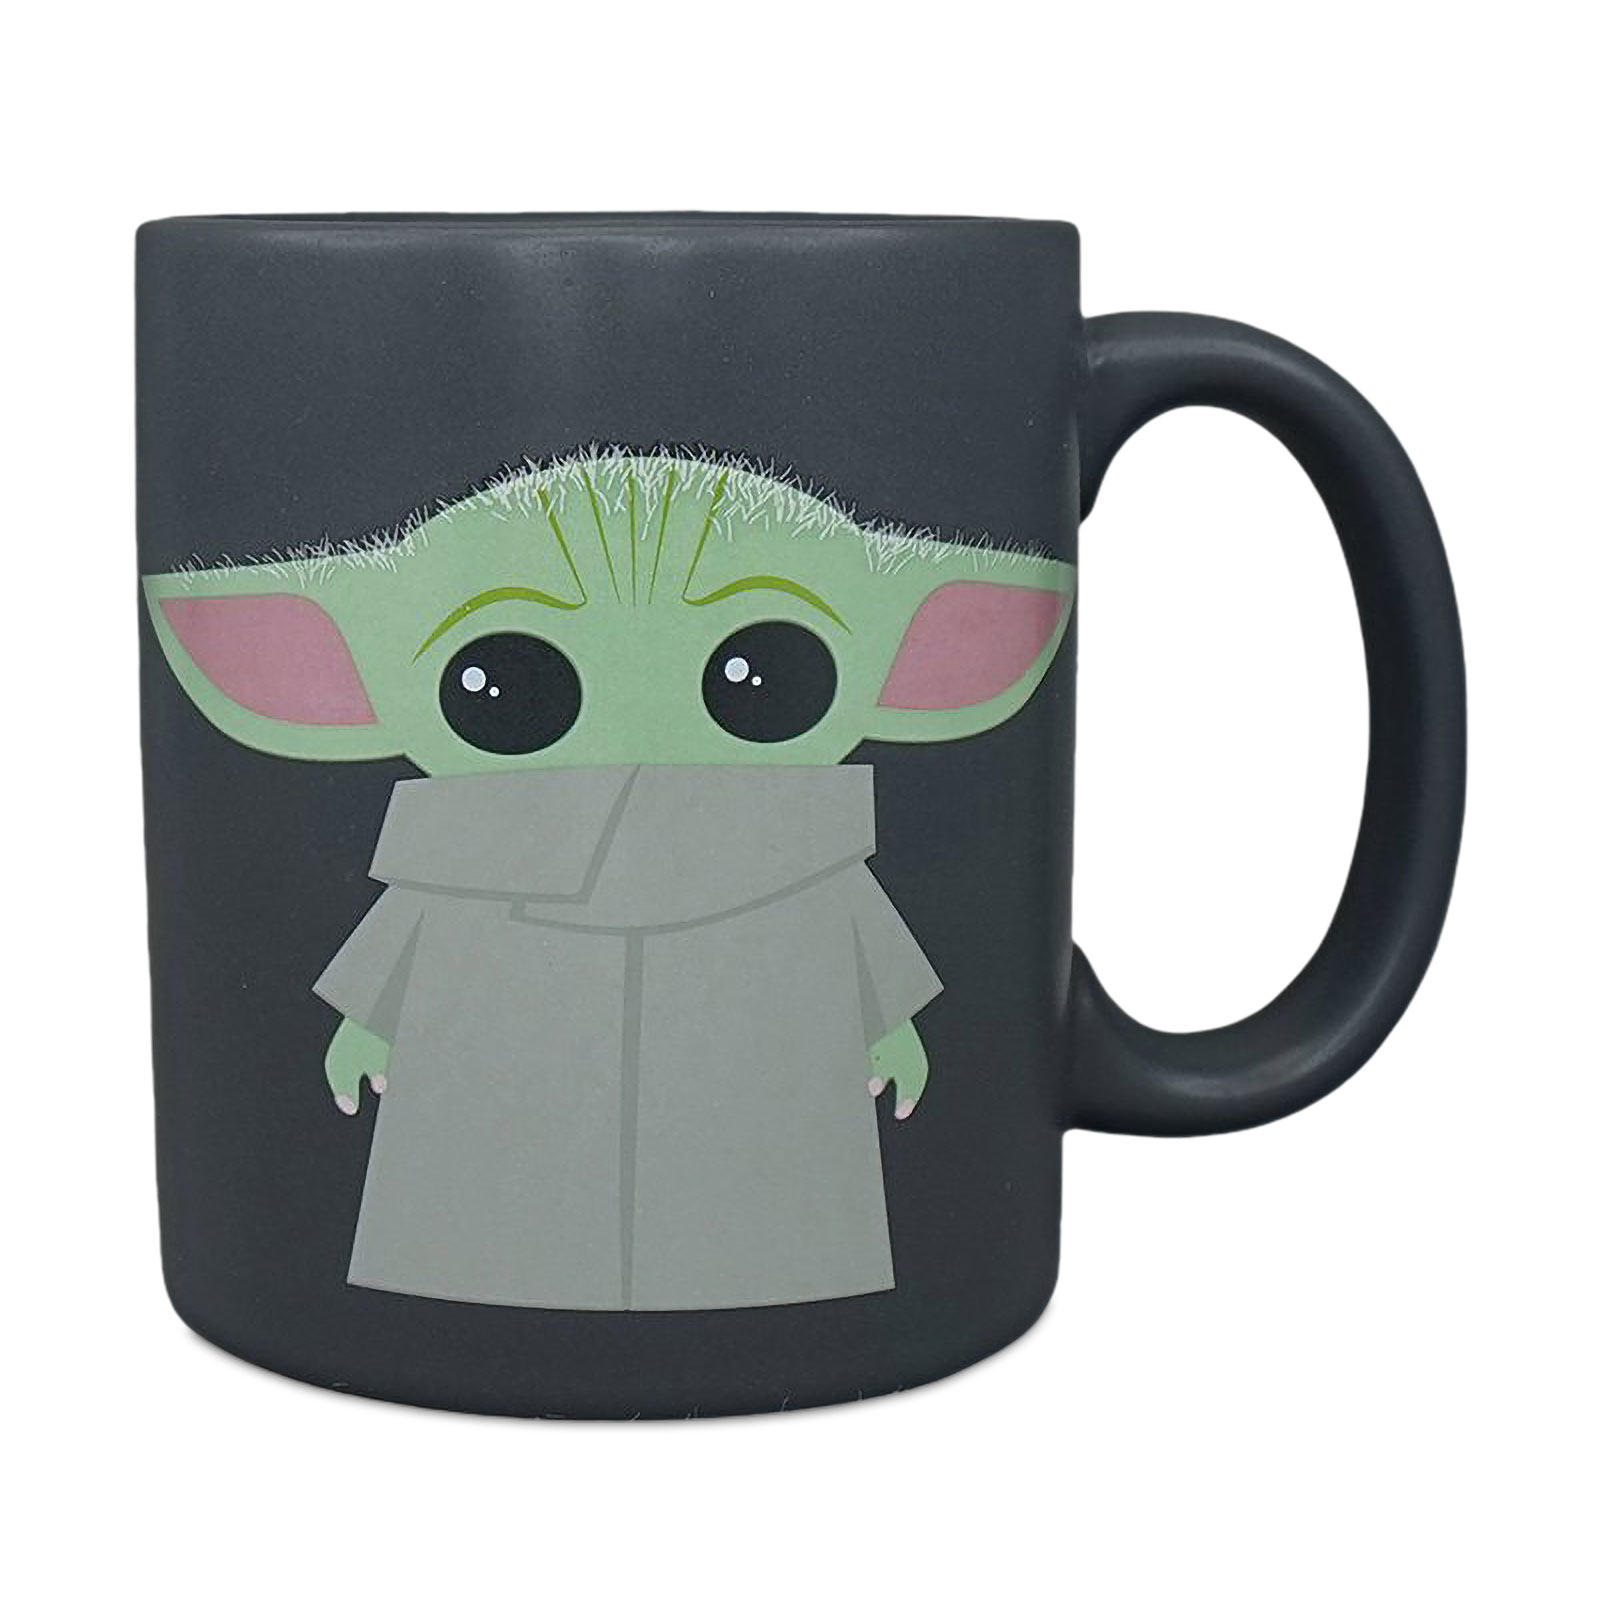 The Child Armed and Dangerous Tasse - Star Wars The Mandalorian